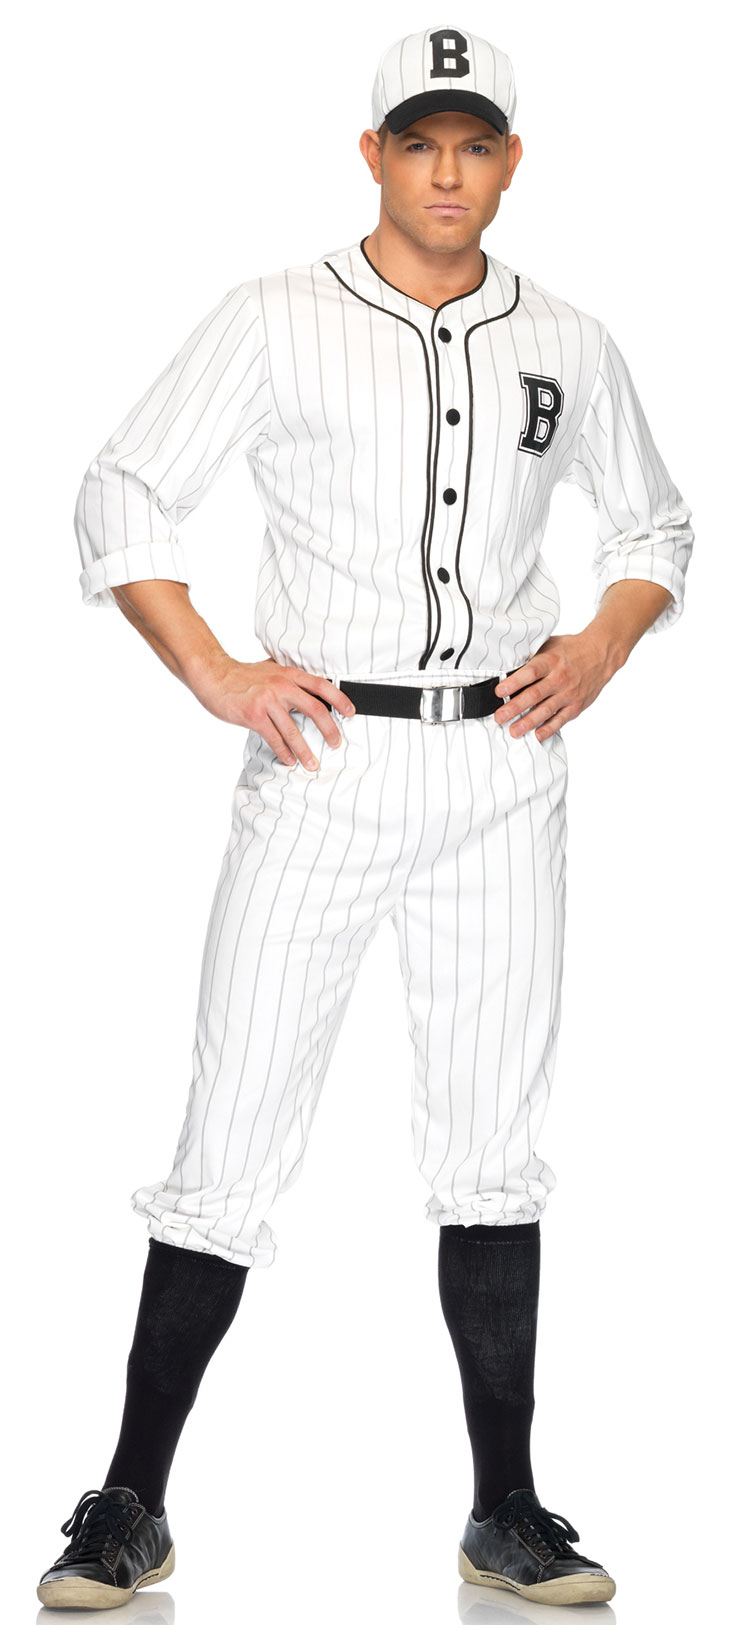 Retro Baseball Player Costume